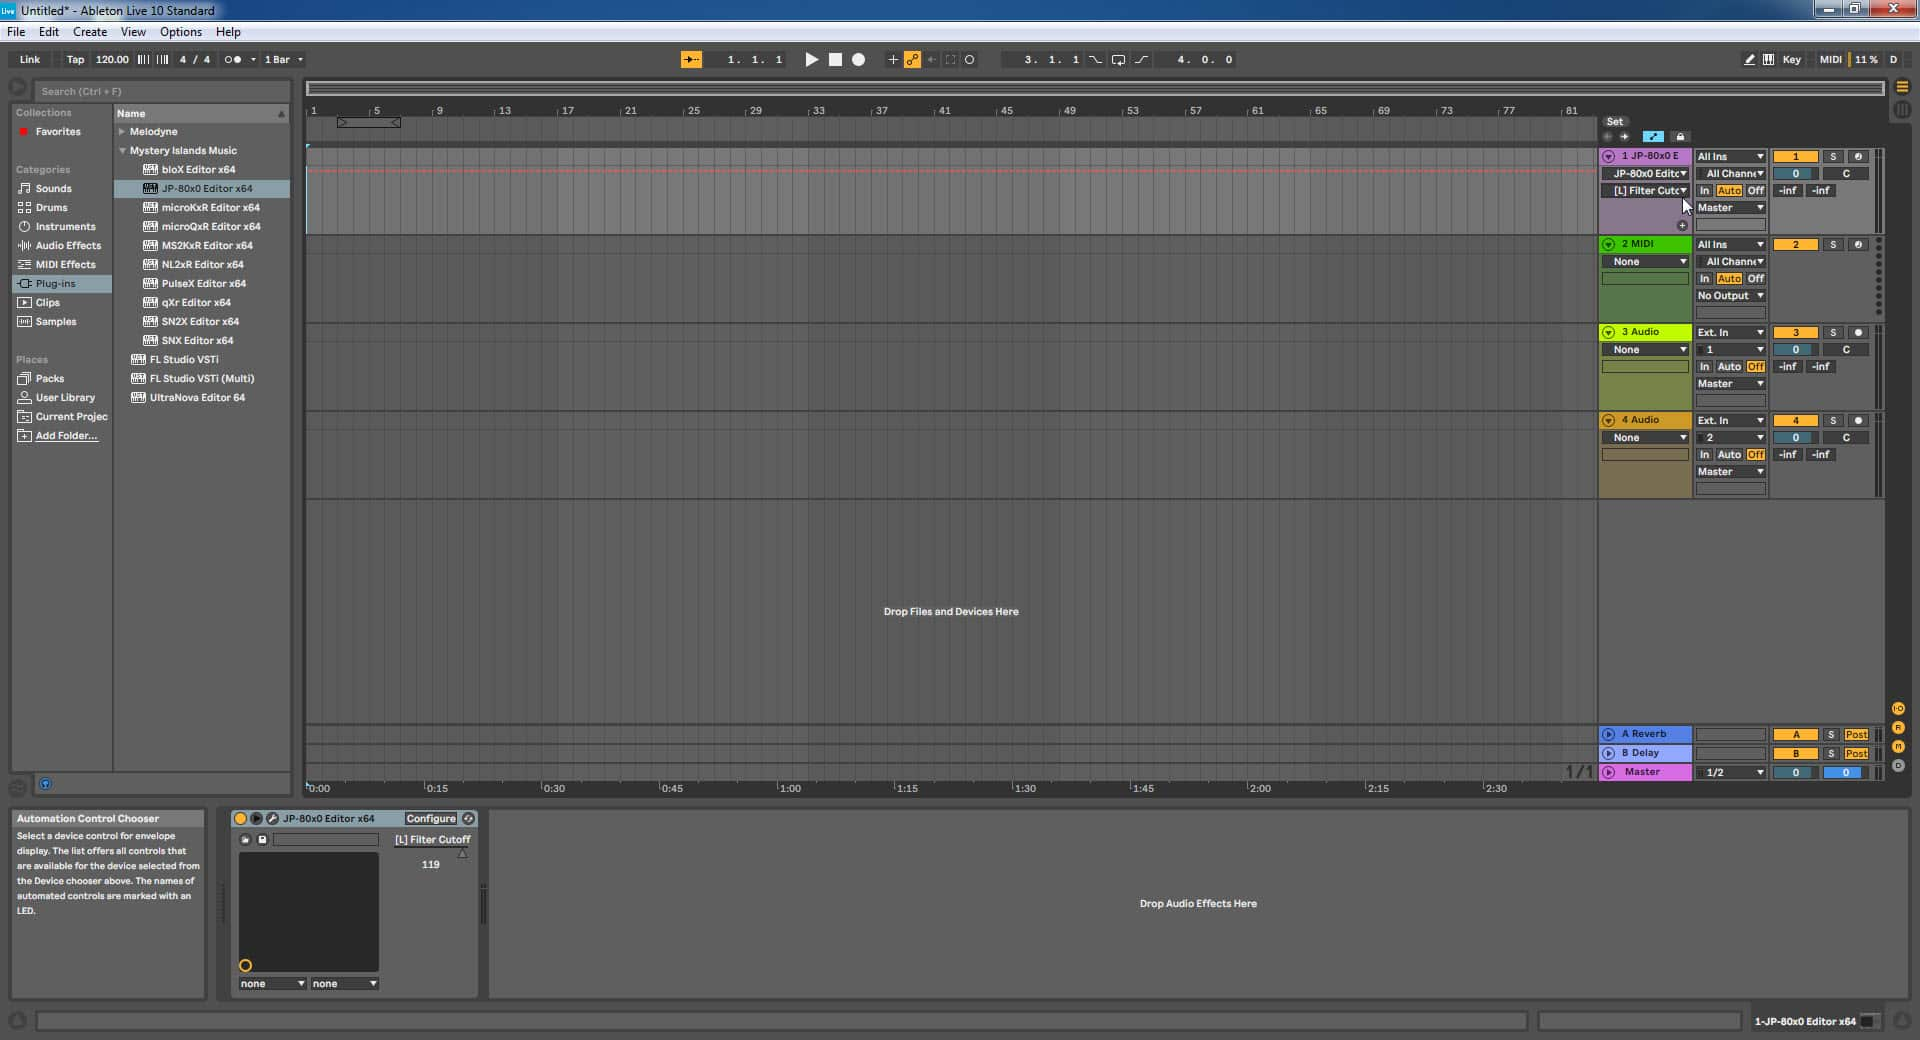 Ableton Live Config - Start Automating